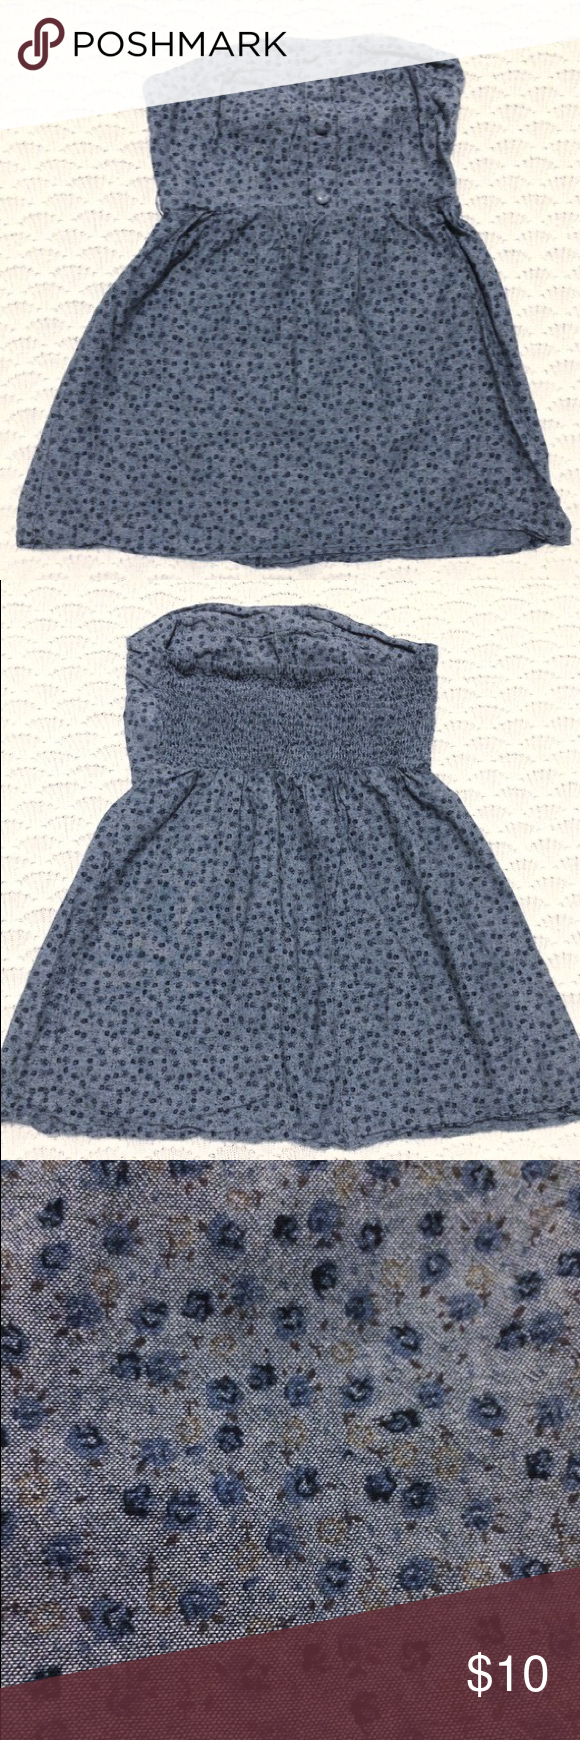 Blue + Floral print dress Sweet little strapless dress in blue floral print. Size Medium and in like-new condition! Pairs well with a belt and boots! Dresses Mini